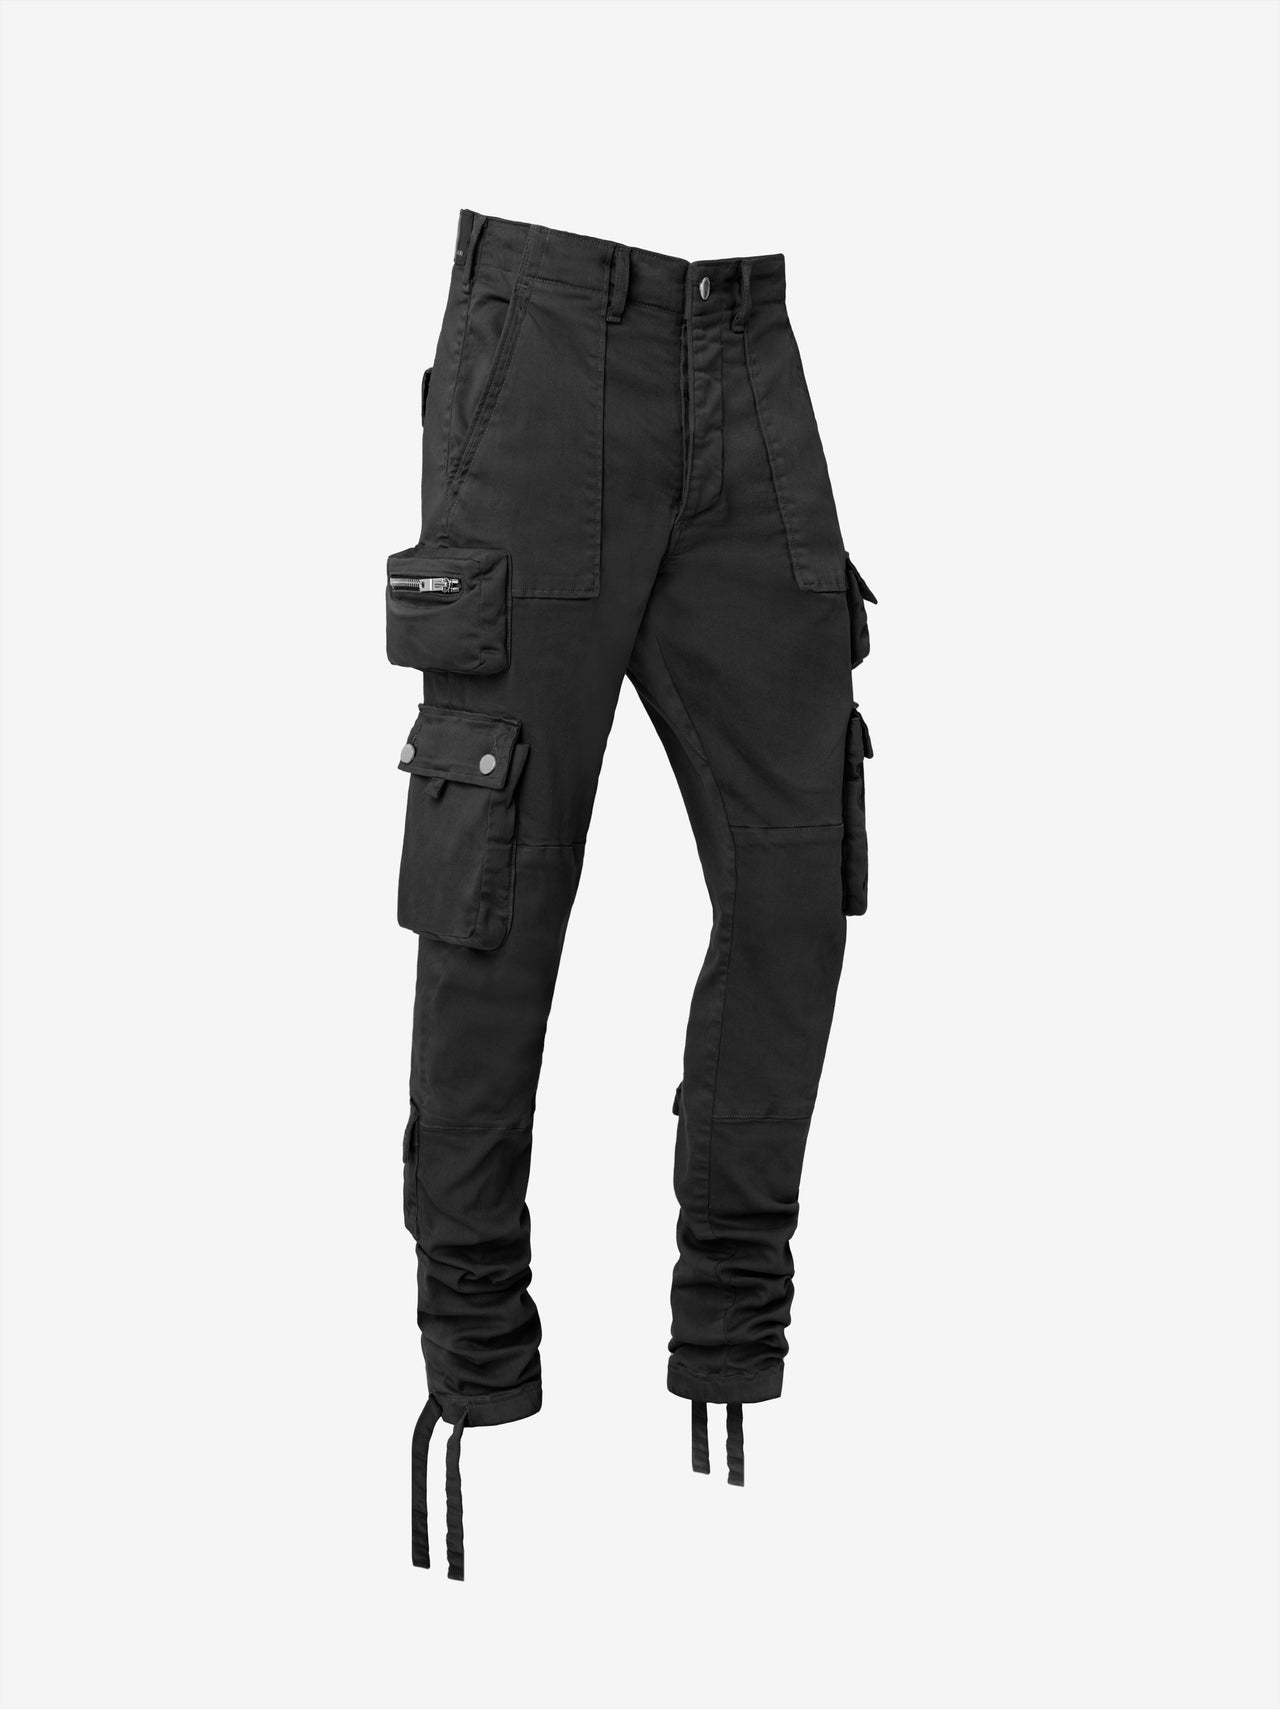 TACTICAL CARGO - BLACK